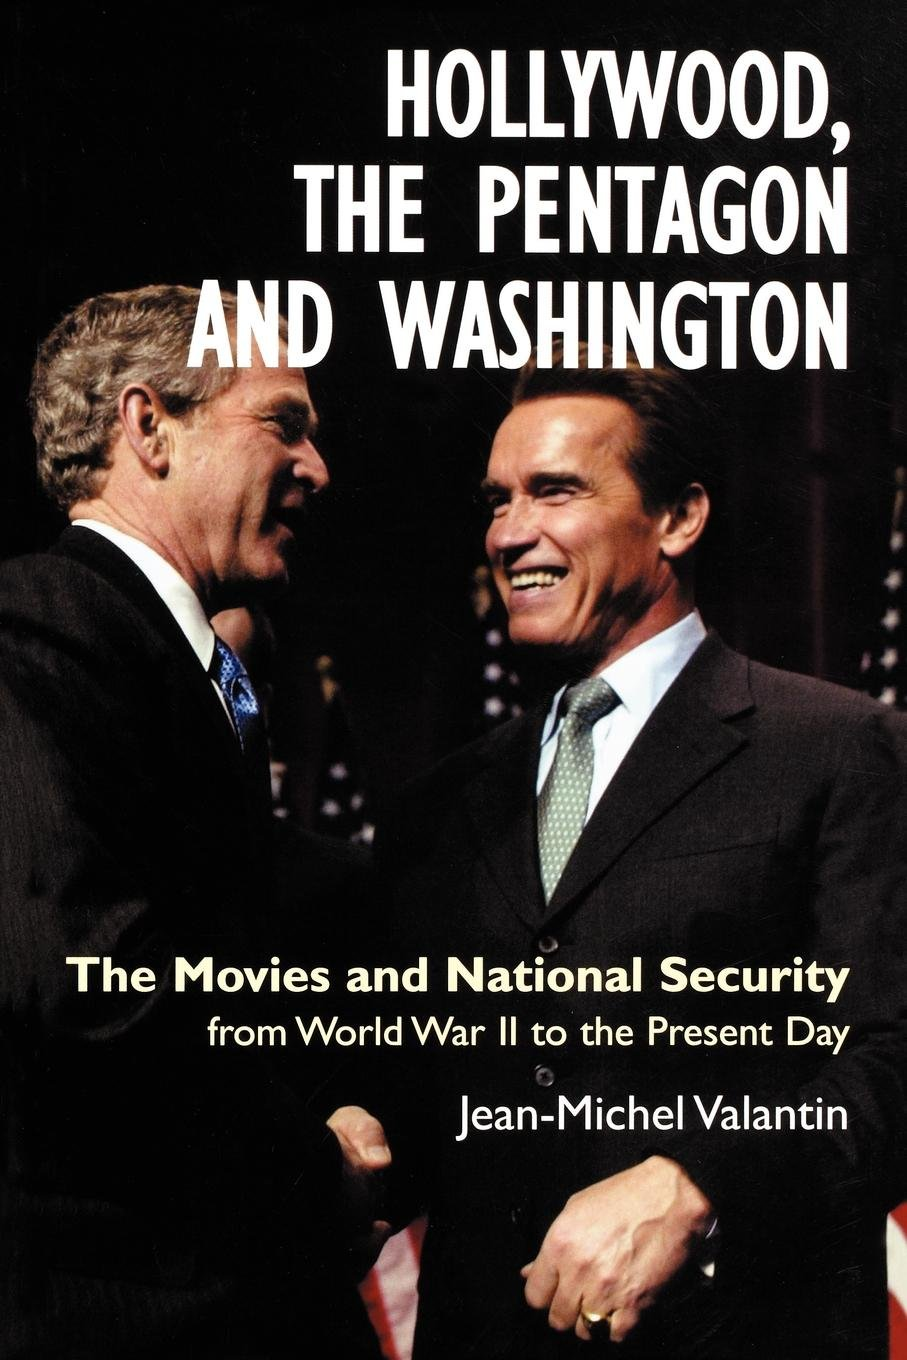 Hollywood, the Pentagon and Washington: The Movies and National Security from World War II to the Present Day (Anthem Politics and IR) PDF